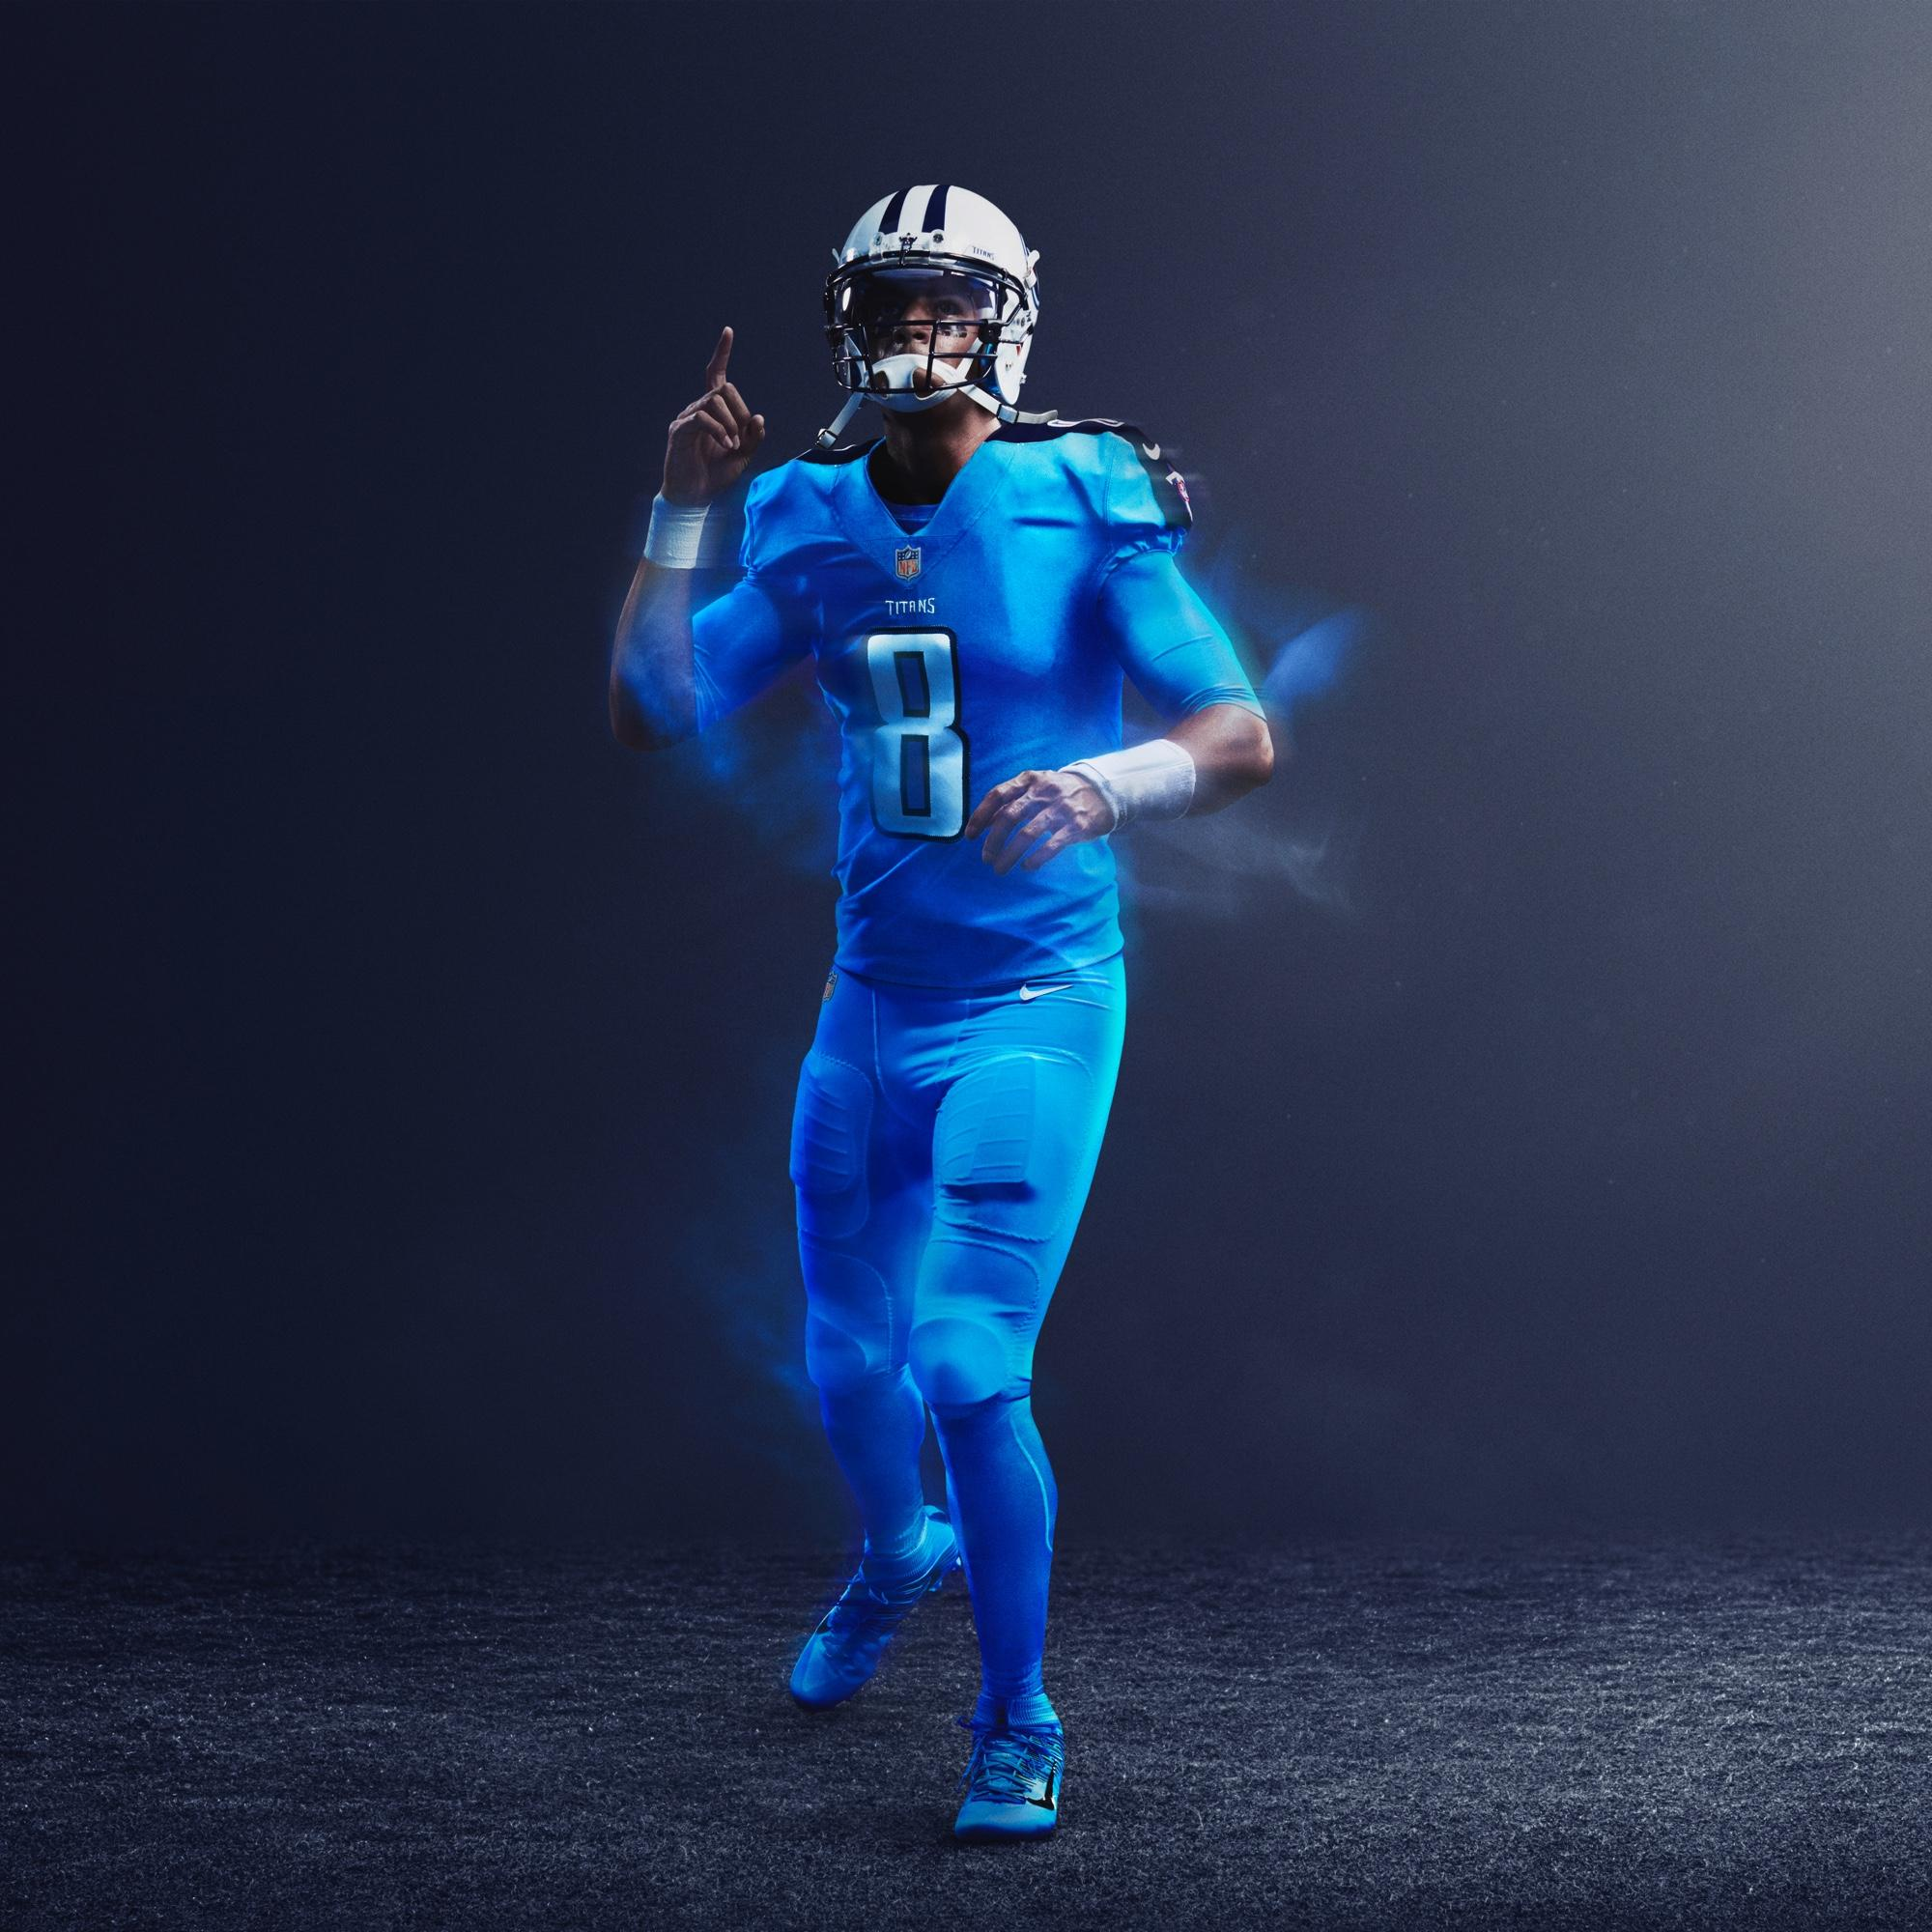 reputable site 37bb6 f2d00 color rush titans jersey